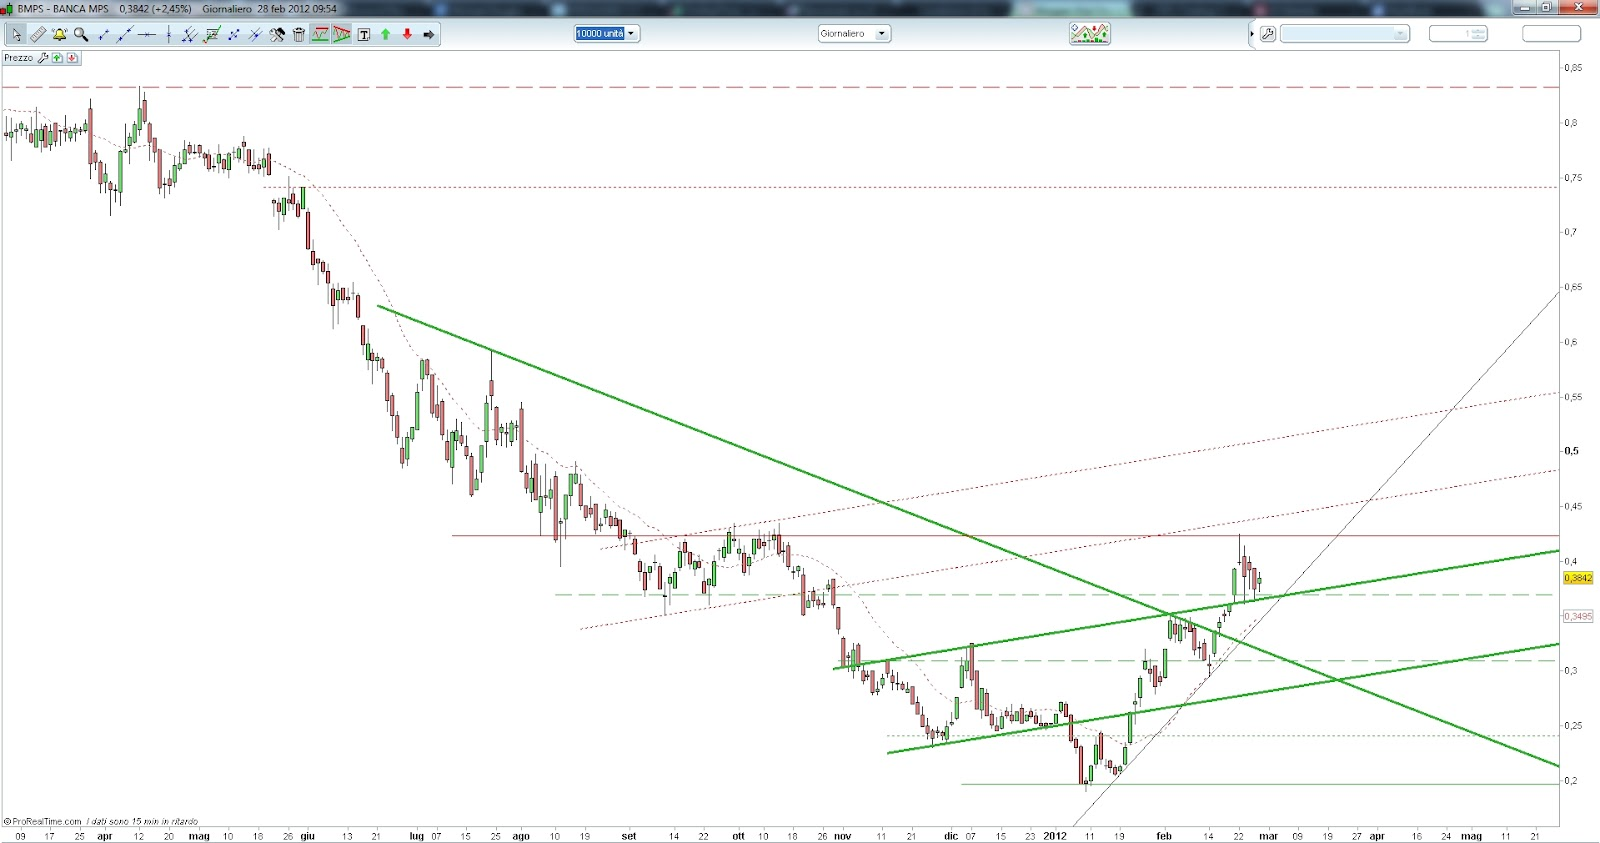 Banca mps trading on line